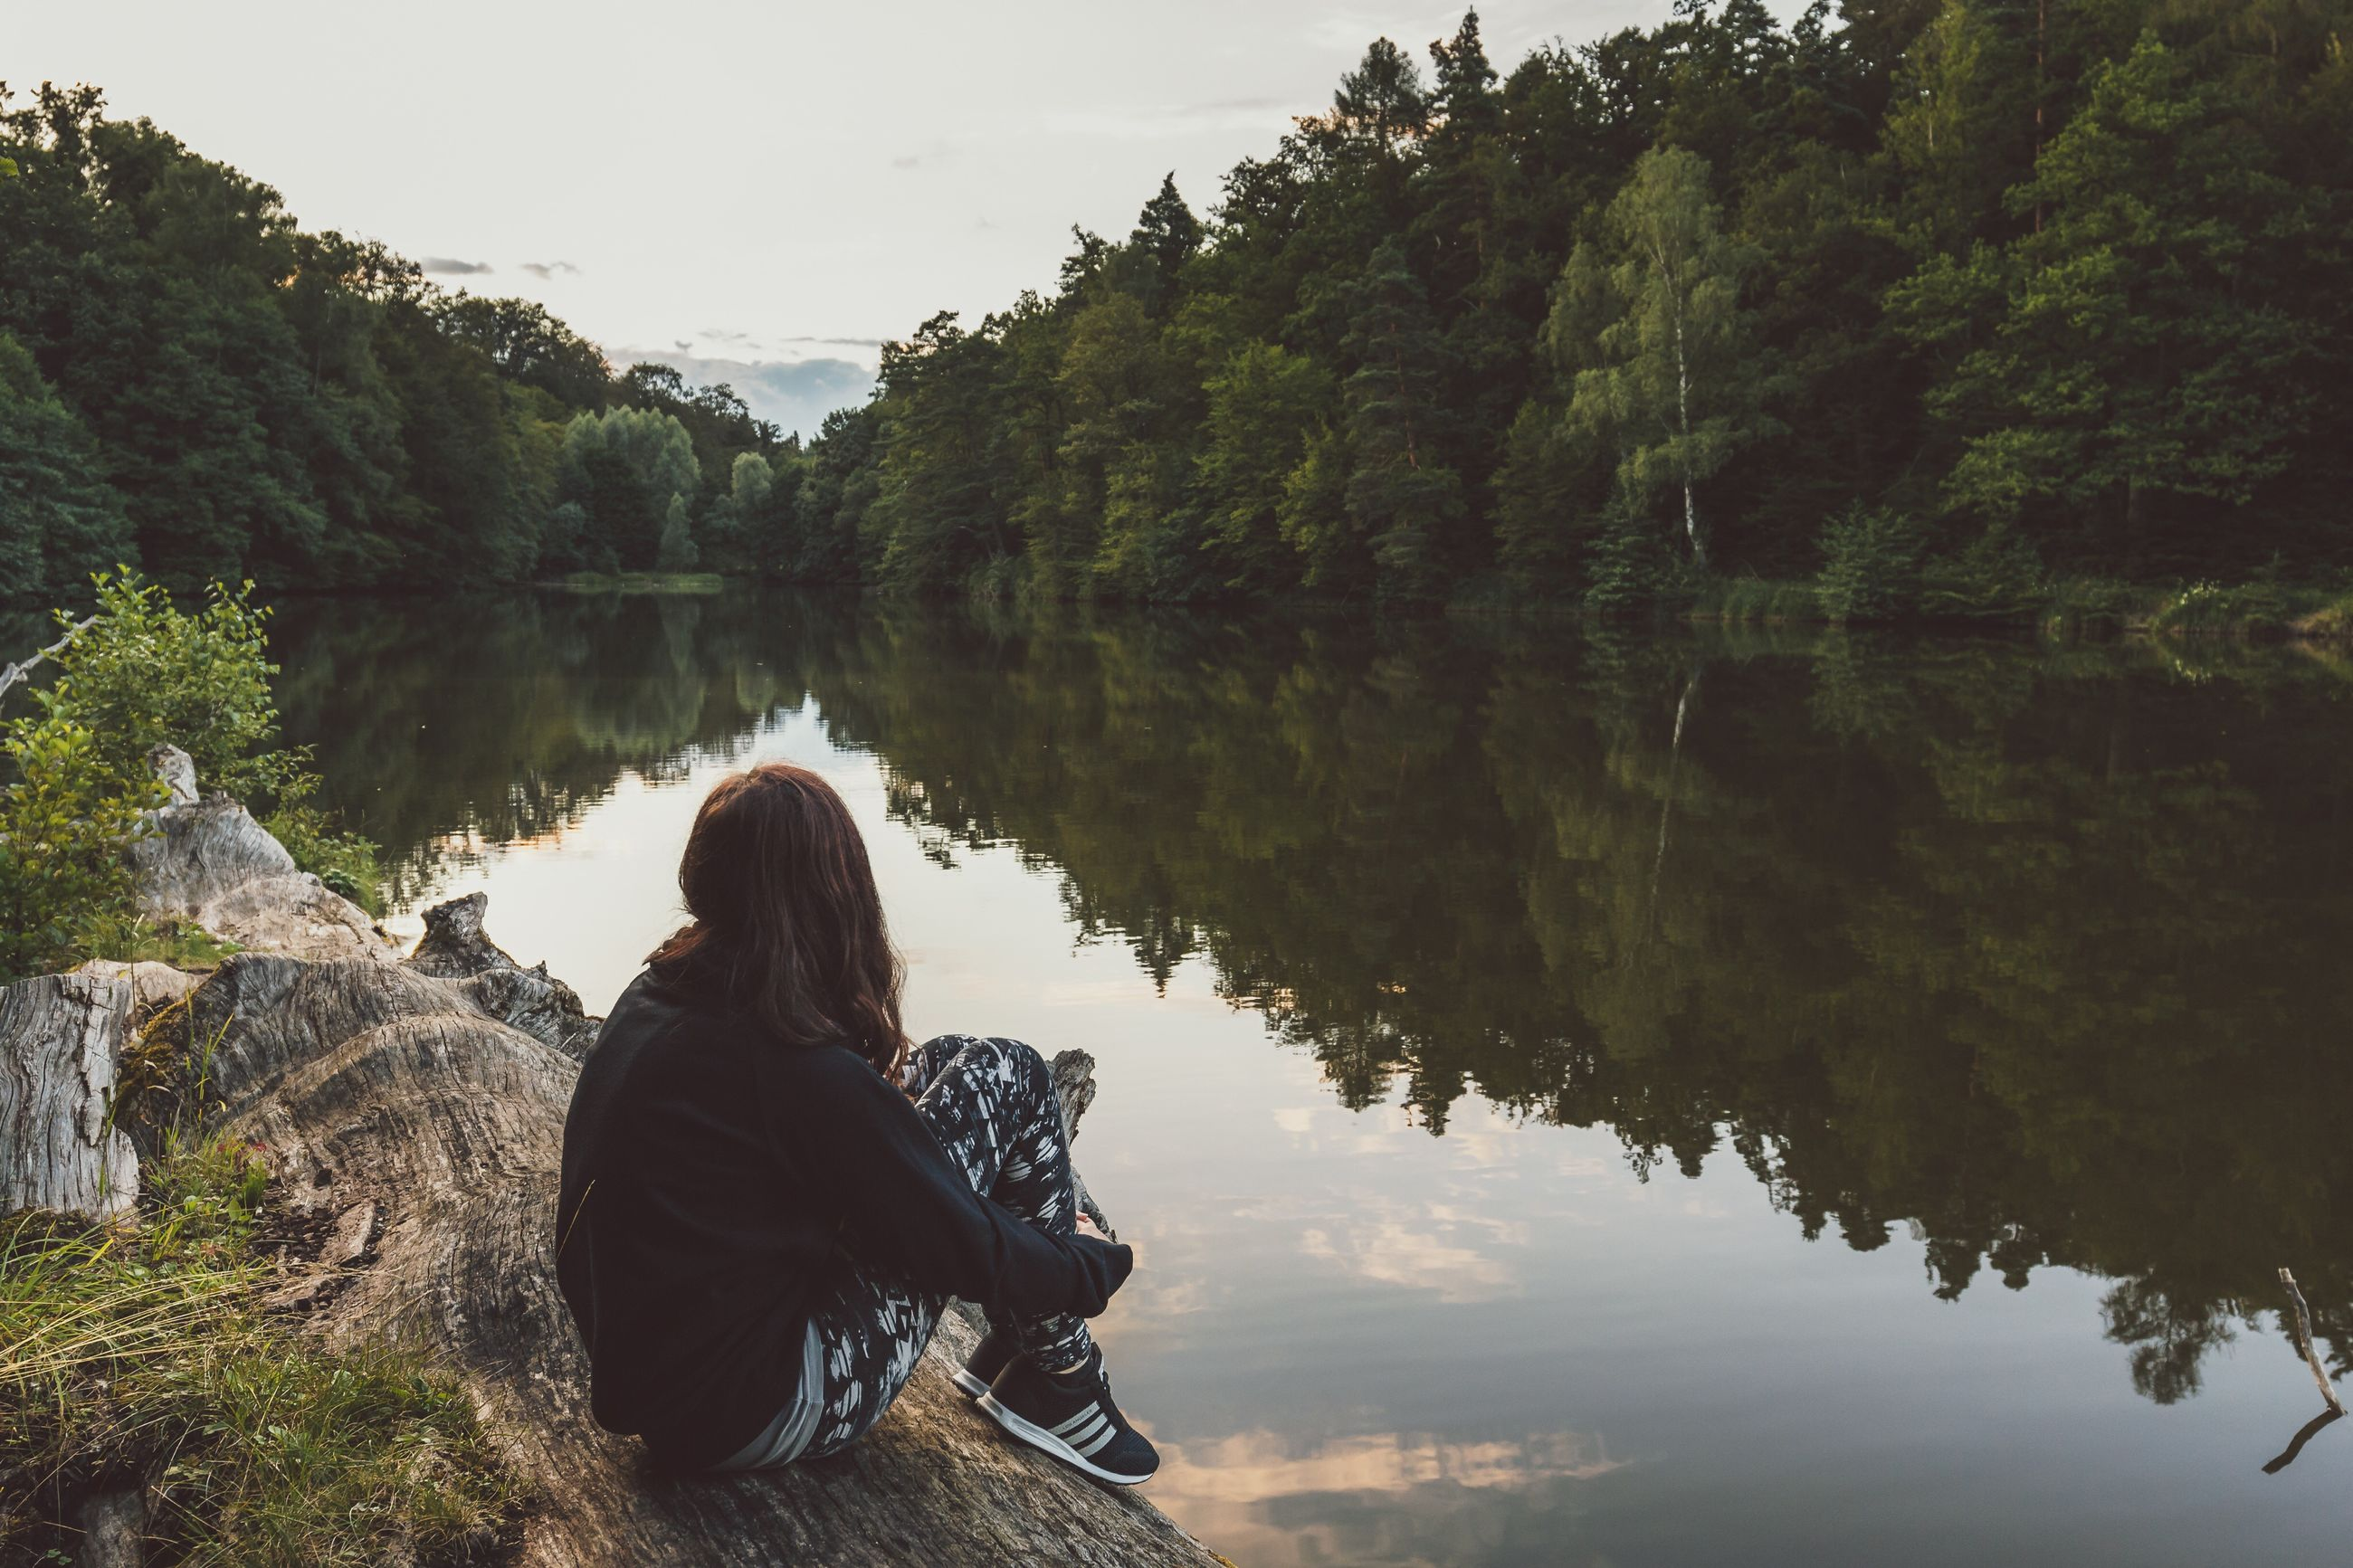 water, lake, tree, tranquility, tranquil scene, reflection, nature, sitting, beauty in nature, scenics, leisure activity, lifestyles, relaxation, sky, lakeshore, idyllic, outdoors, plant, day, non-urban scene, calm, remote, growth, non urban scene